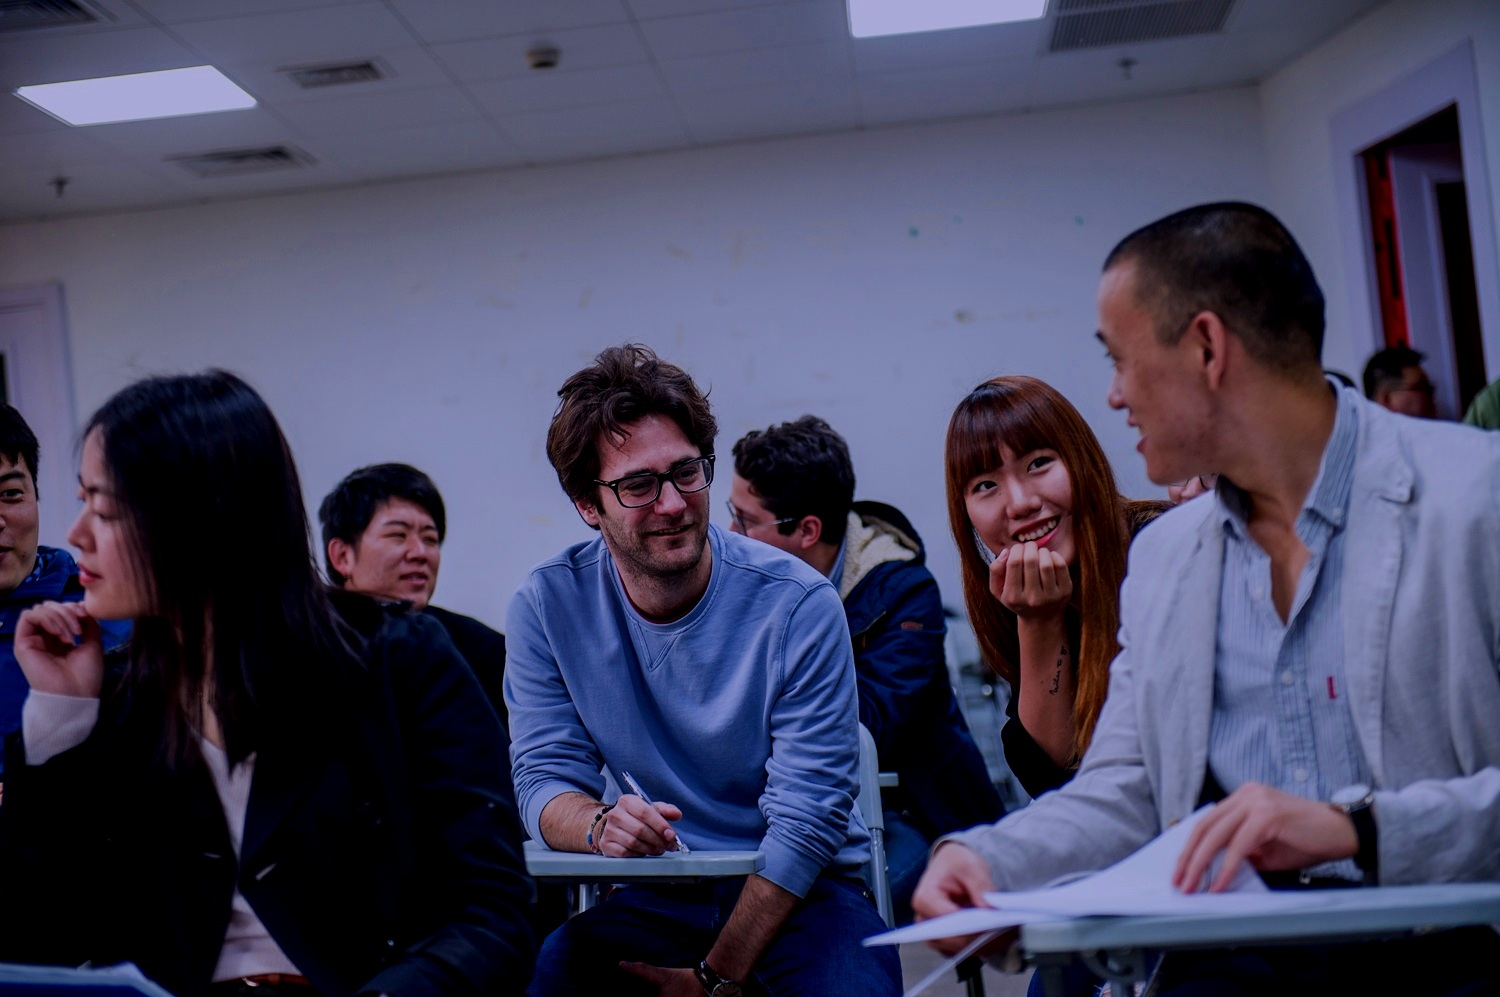 20 nationalities represented in the faculty. -